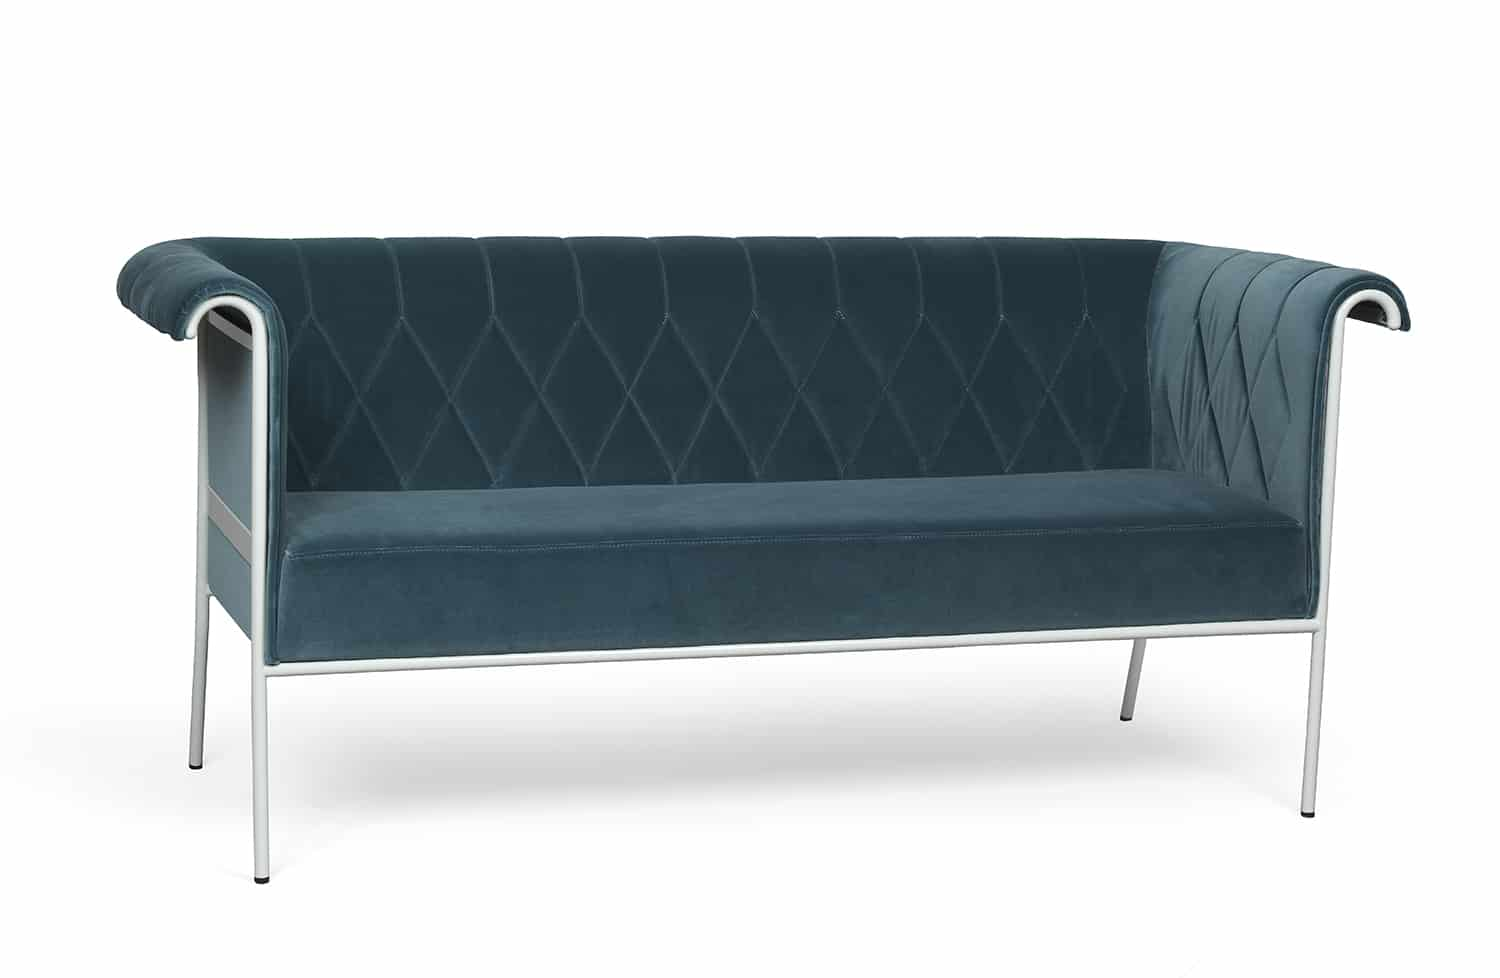 Chester sofa k llemo scandinavian design for Sofa 75 cm tief